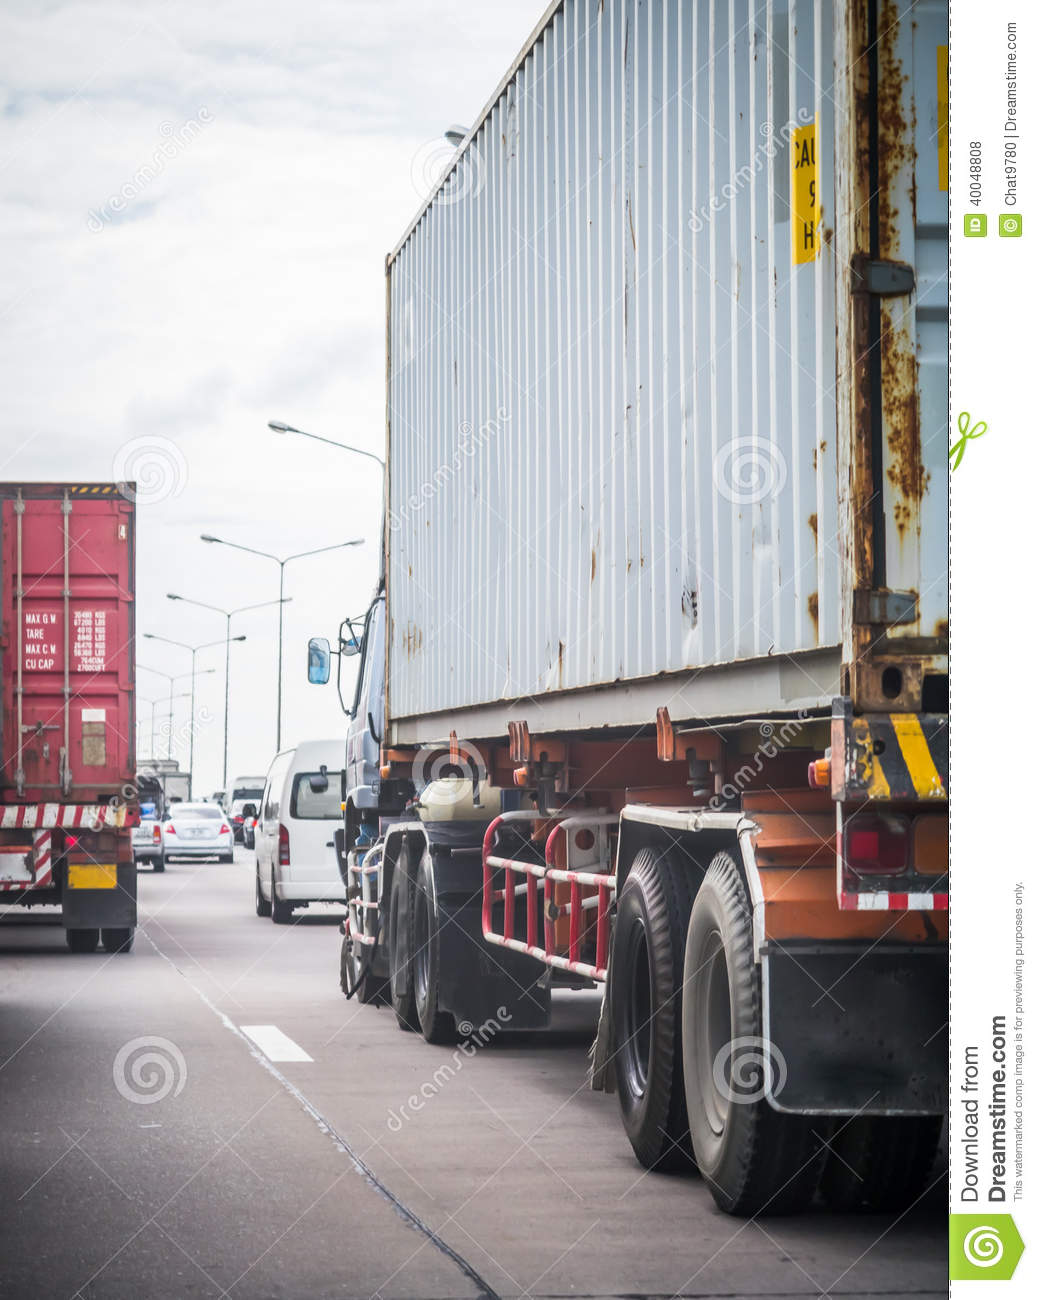 Truck With Container On The Road Stock Photo - Image: 40048808